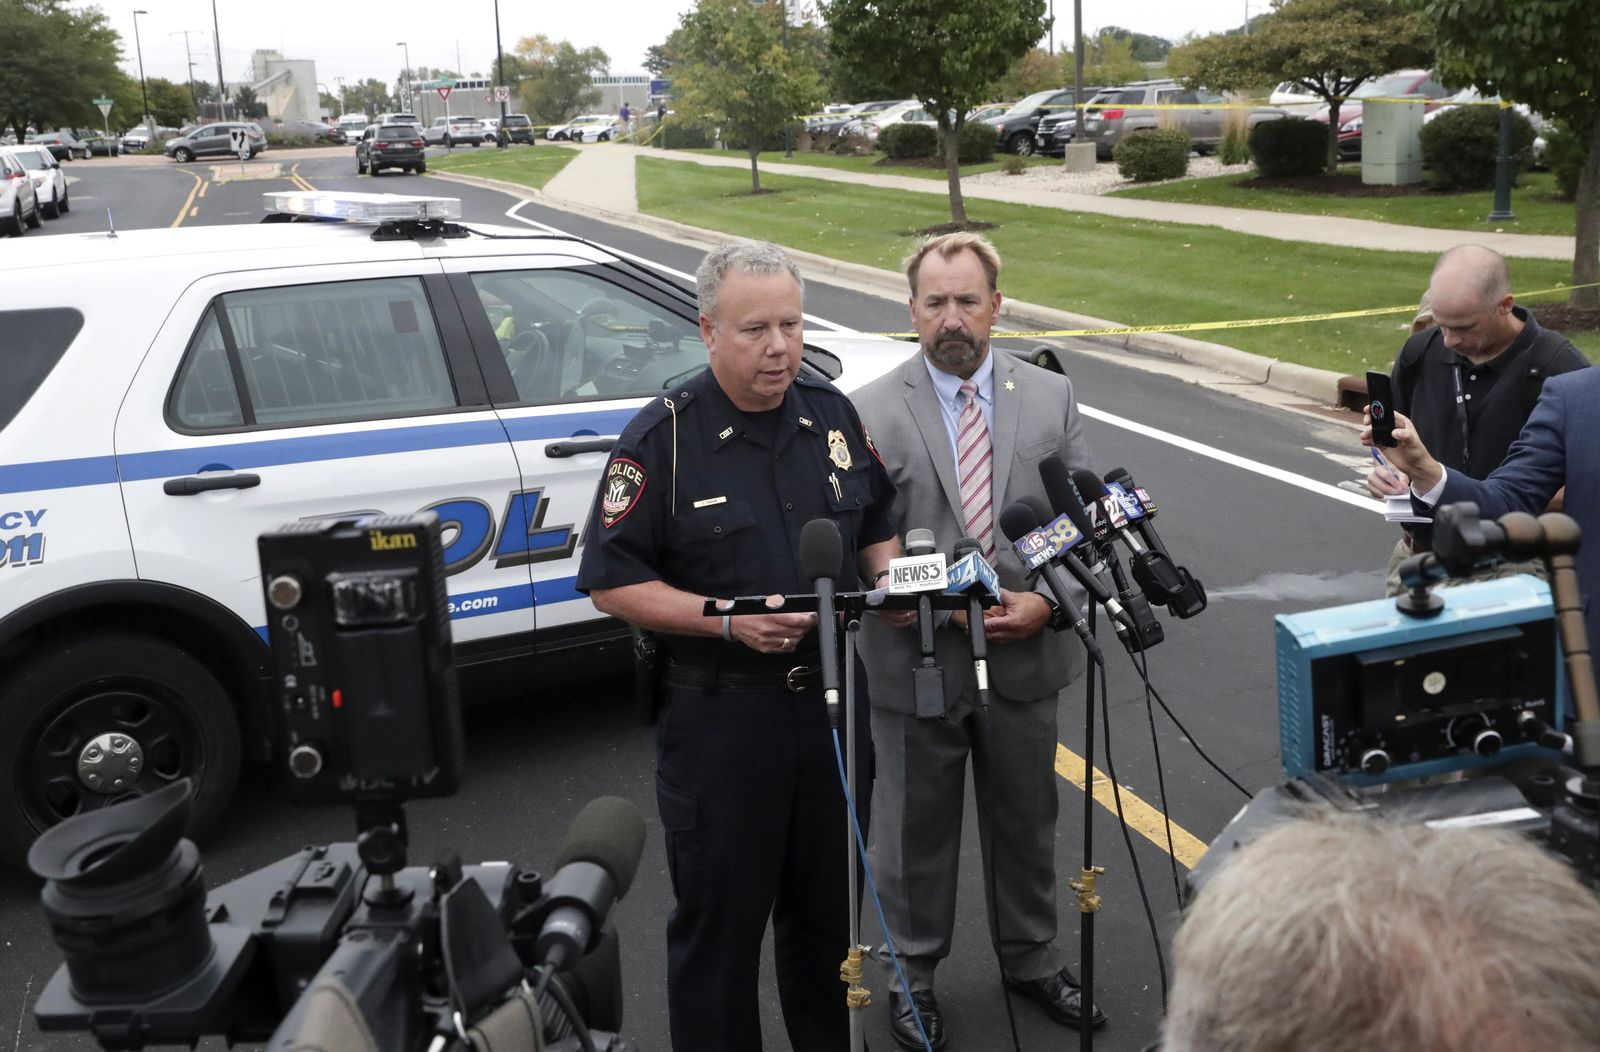 Middleton Police Chief Charles Foulke, left, and Dane County Sheriff Dave Mahoney hold a news conference near the scene of a shooting Wednesday Sept. 19, 2018, in Madison. (Steve Apps/Wisconsin State Journal via AP)